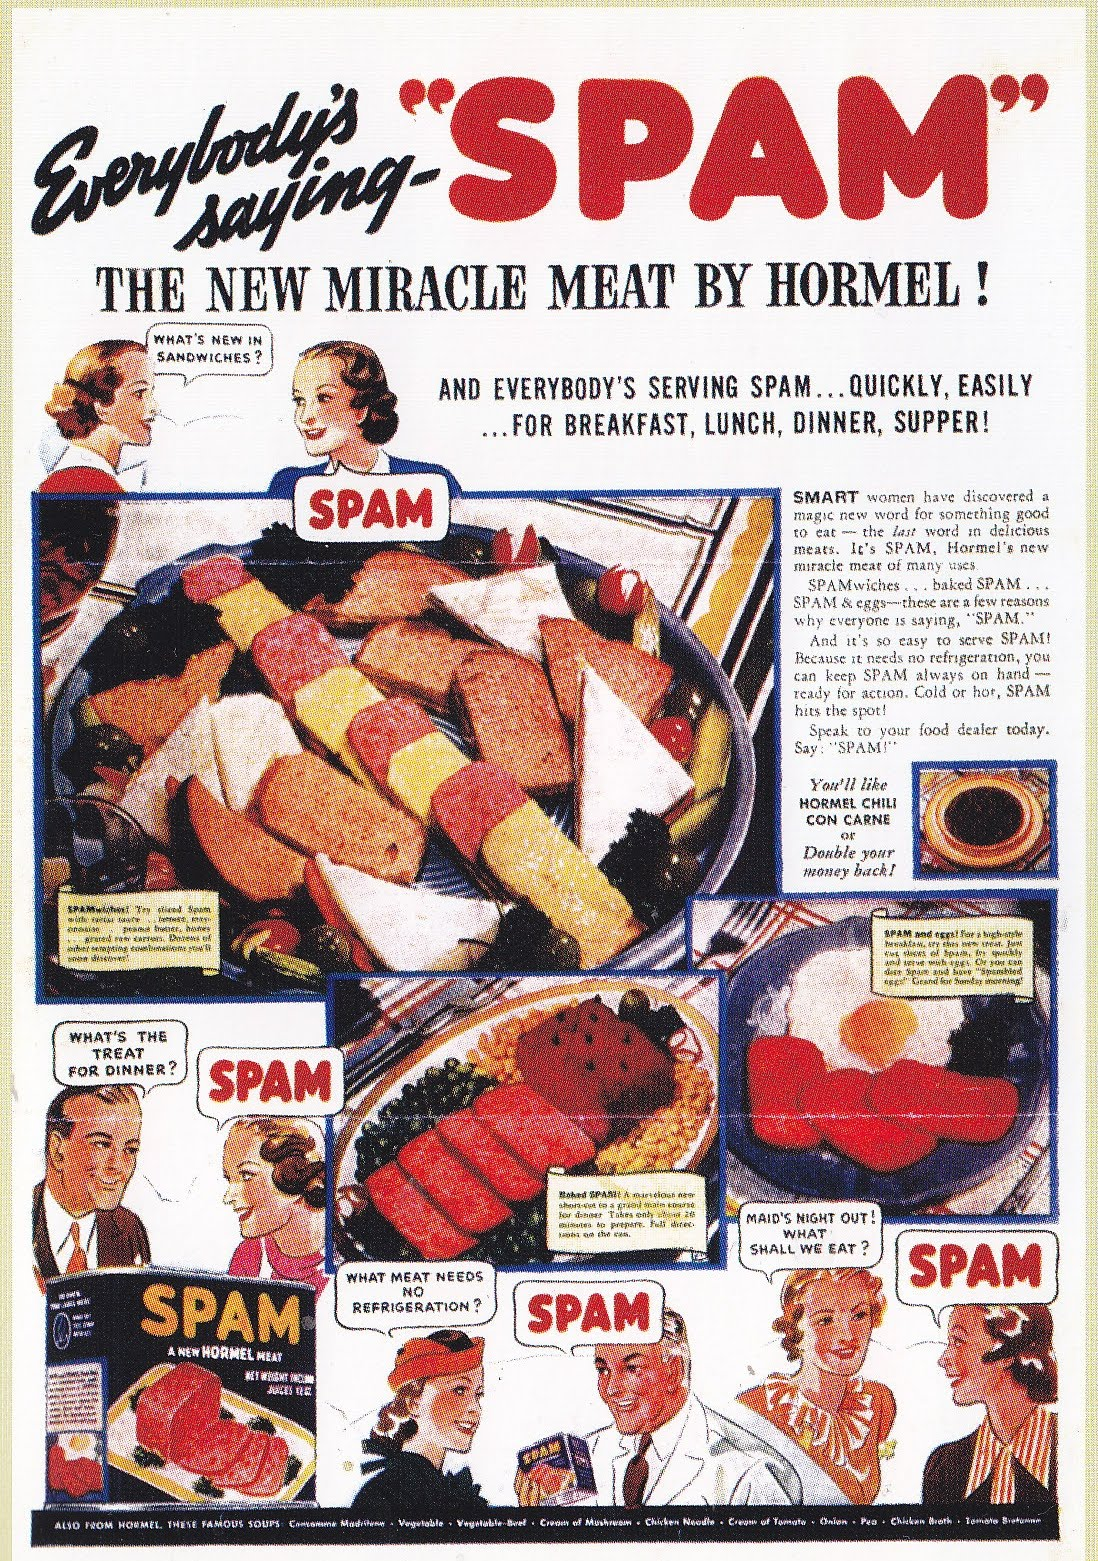 SPAM ADVERTISEMENT 1930S AND 1940S